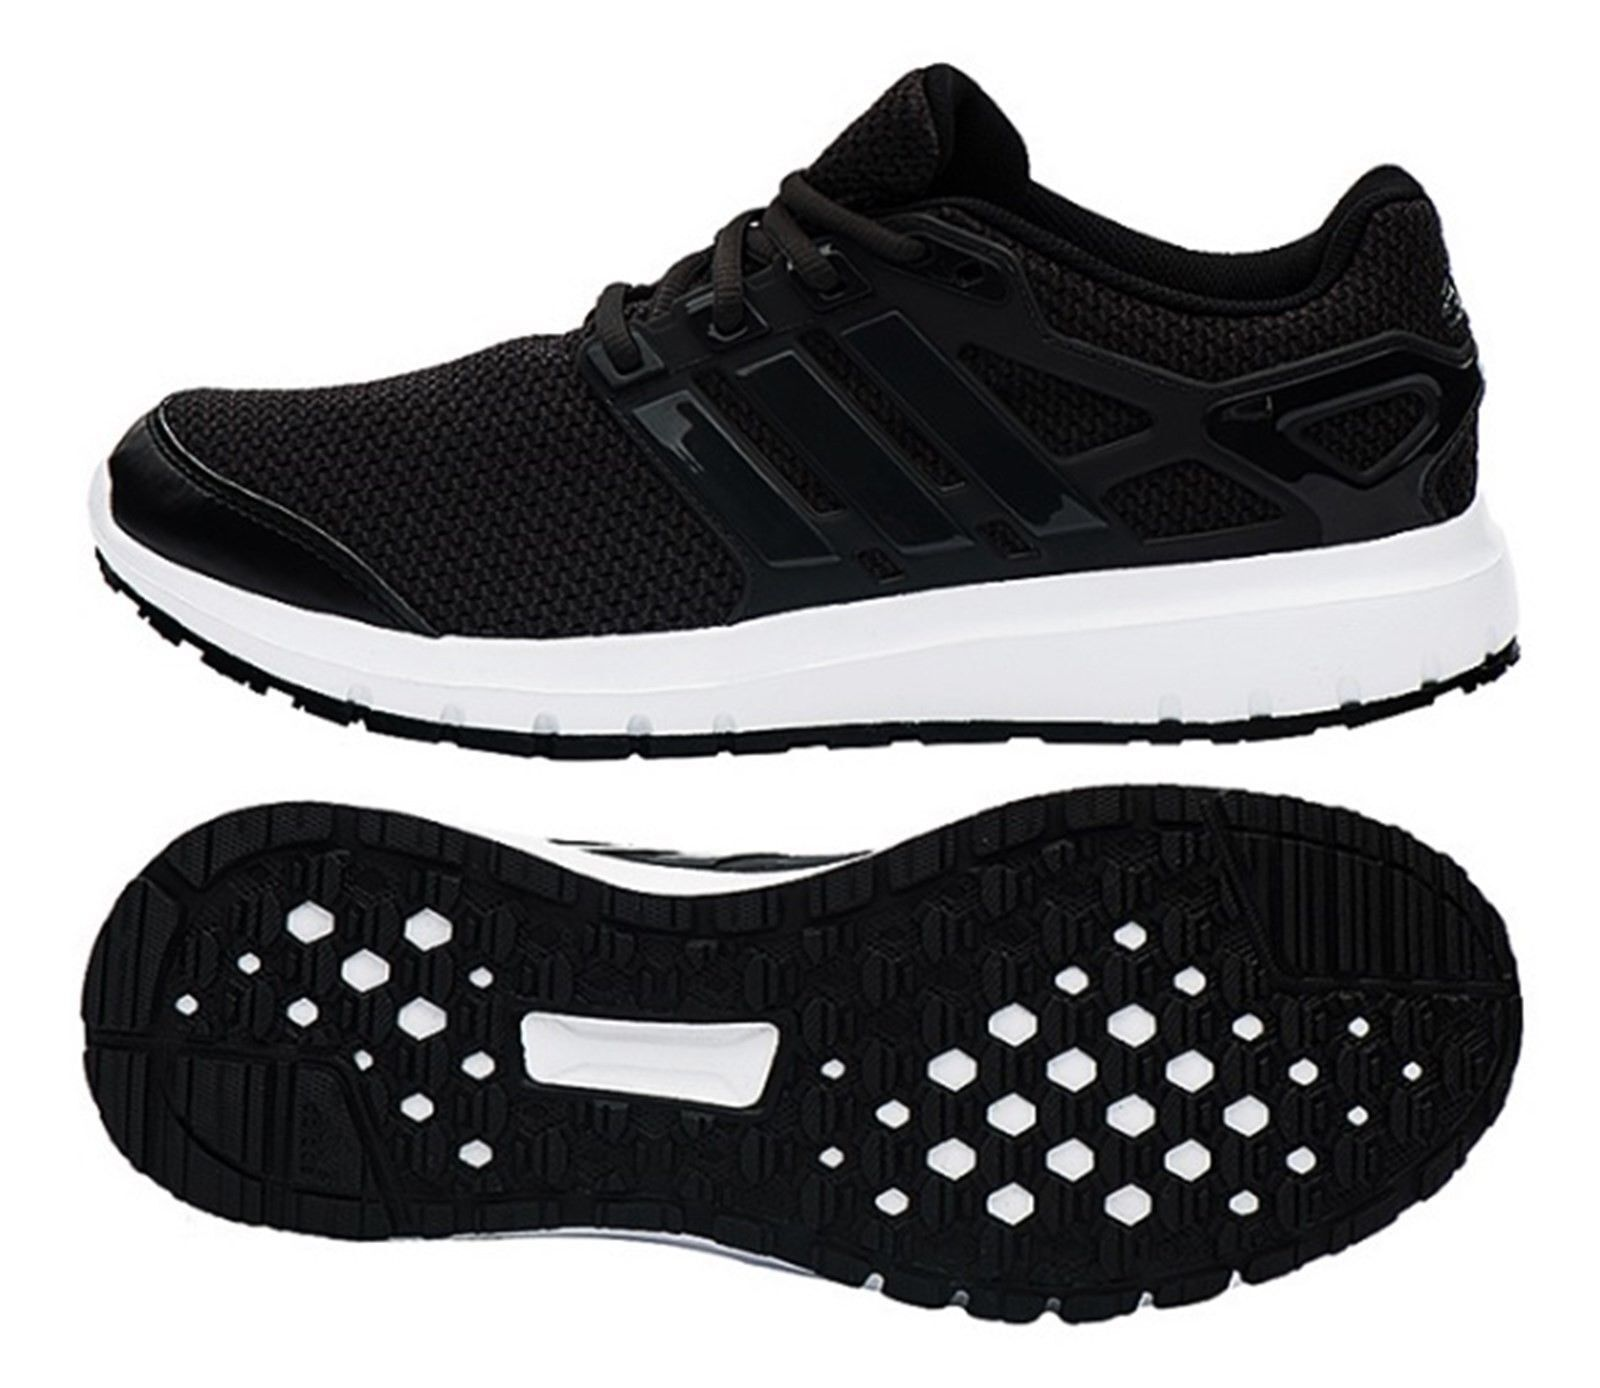 Adidas Men shoes Energy Cloud M Running Sneakers Black Casual shoes GYM AQ4181